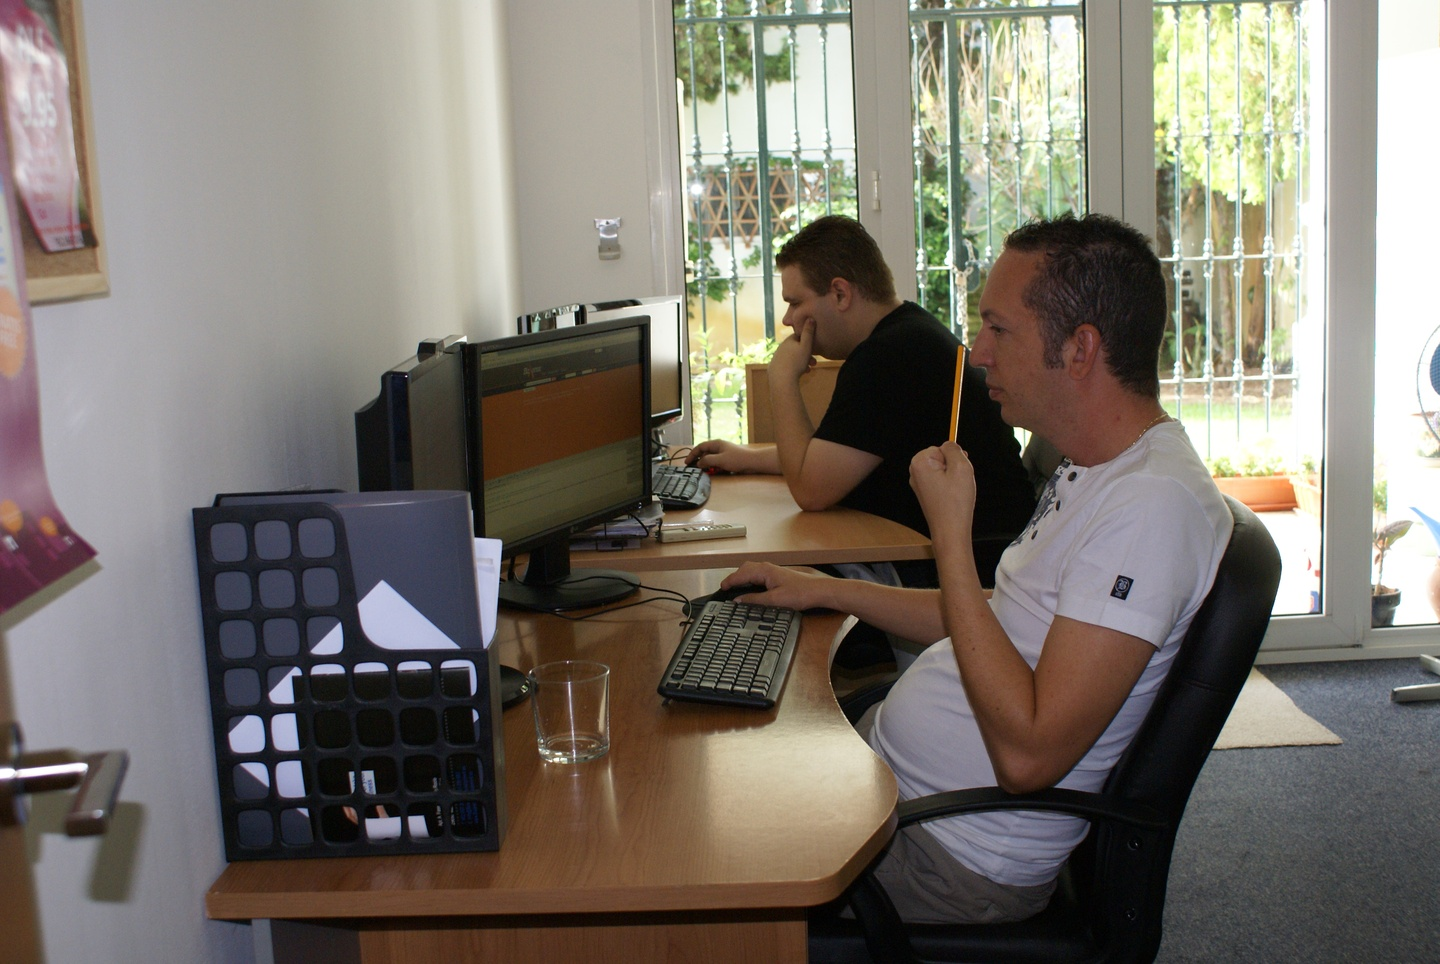 Malaga training rooms Coworking Space Business Development Centre image 1